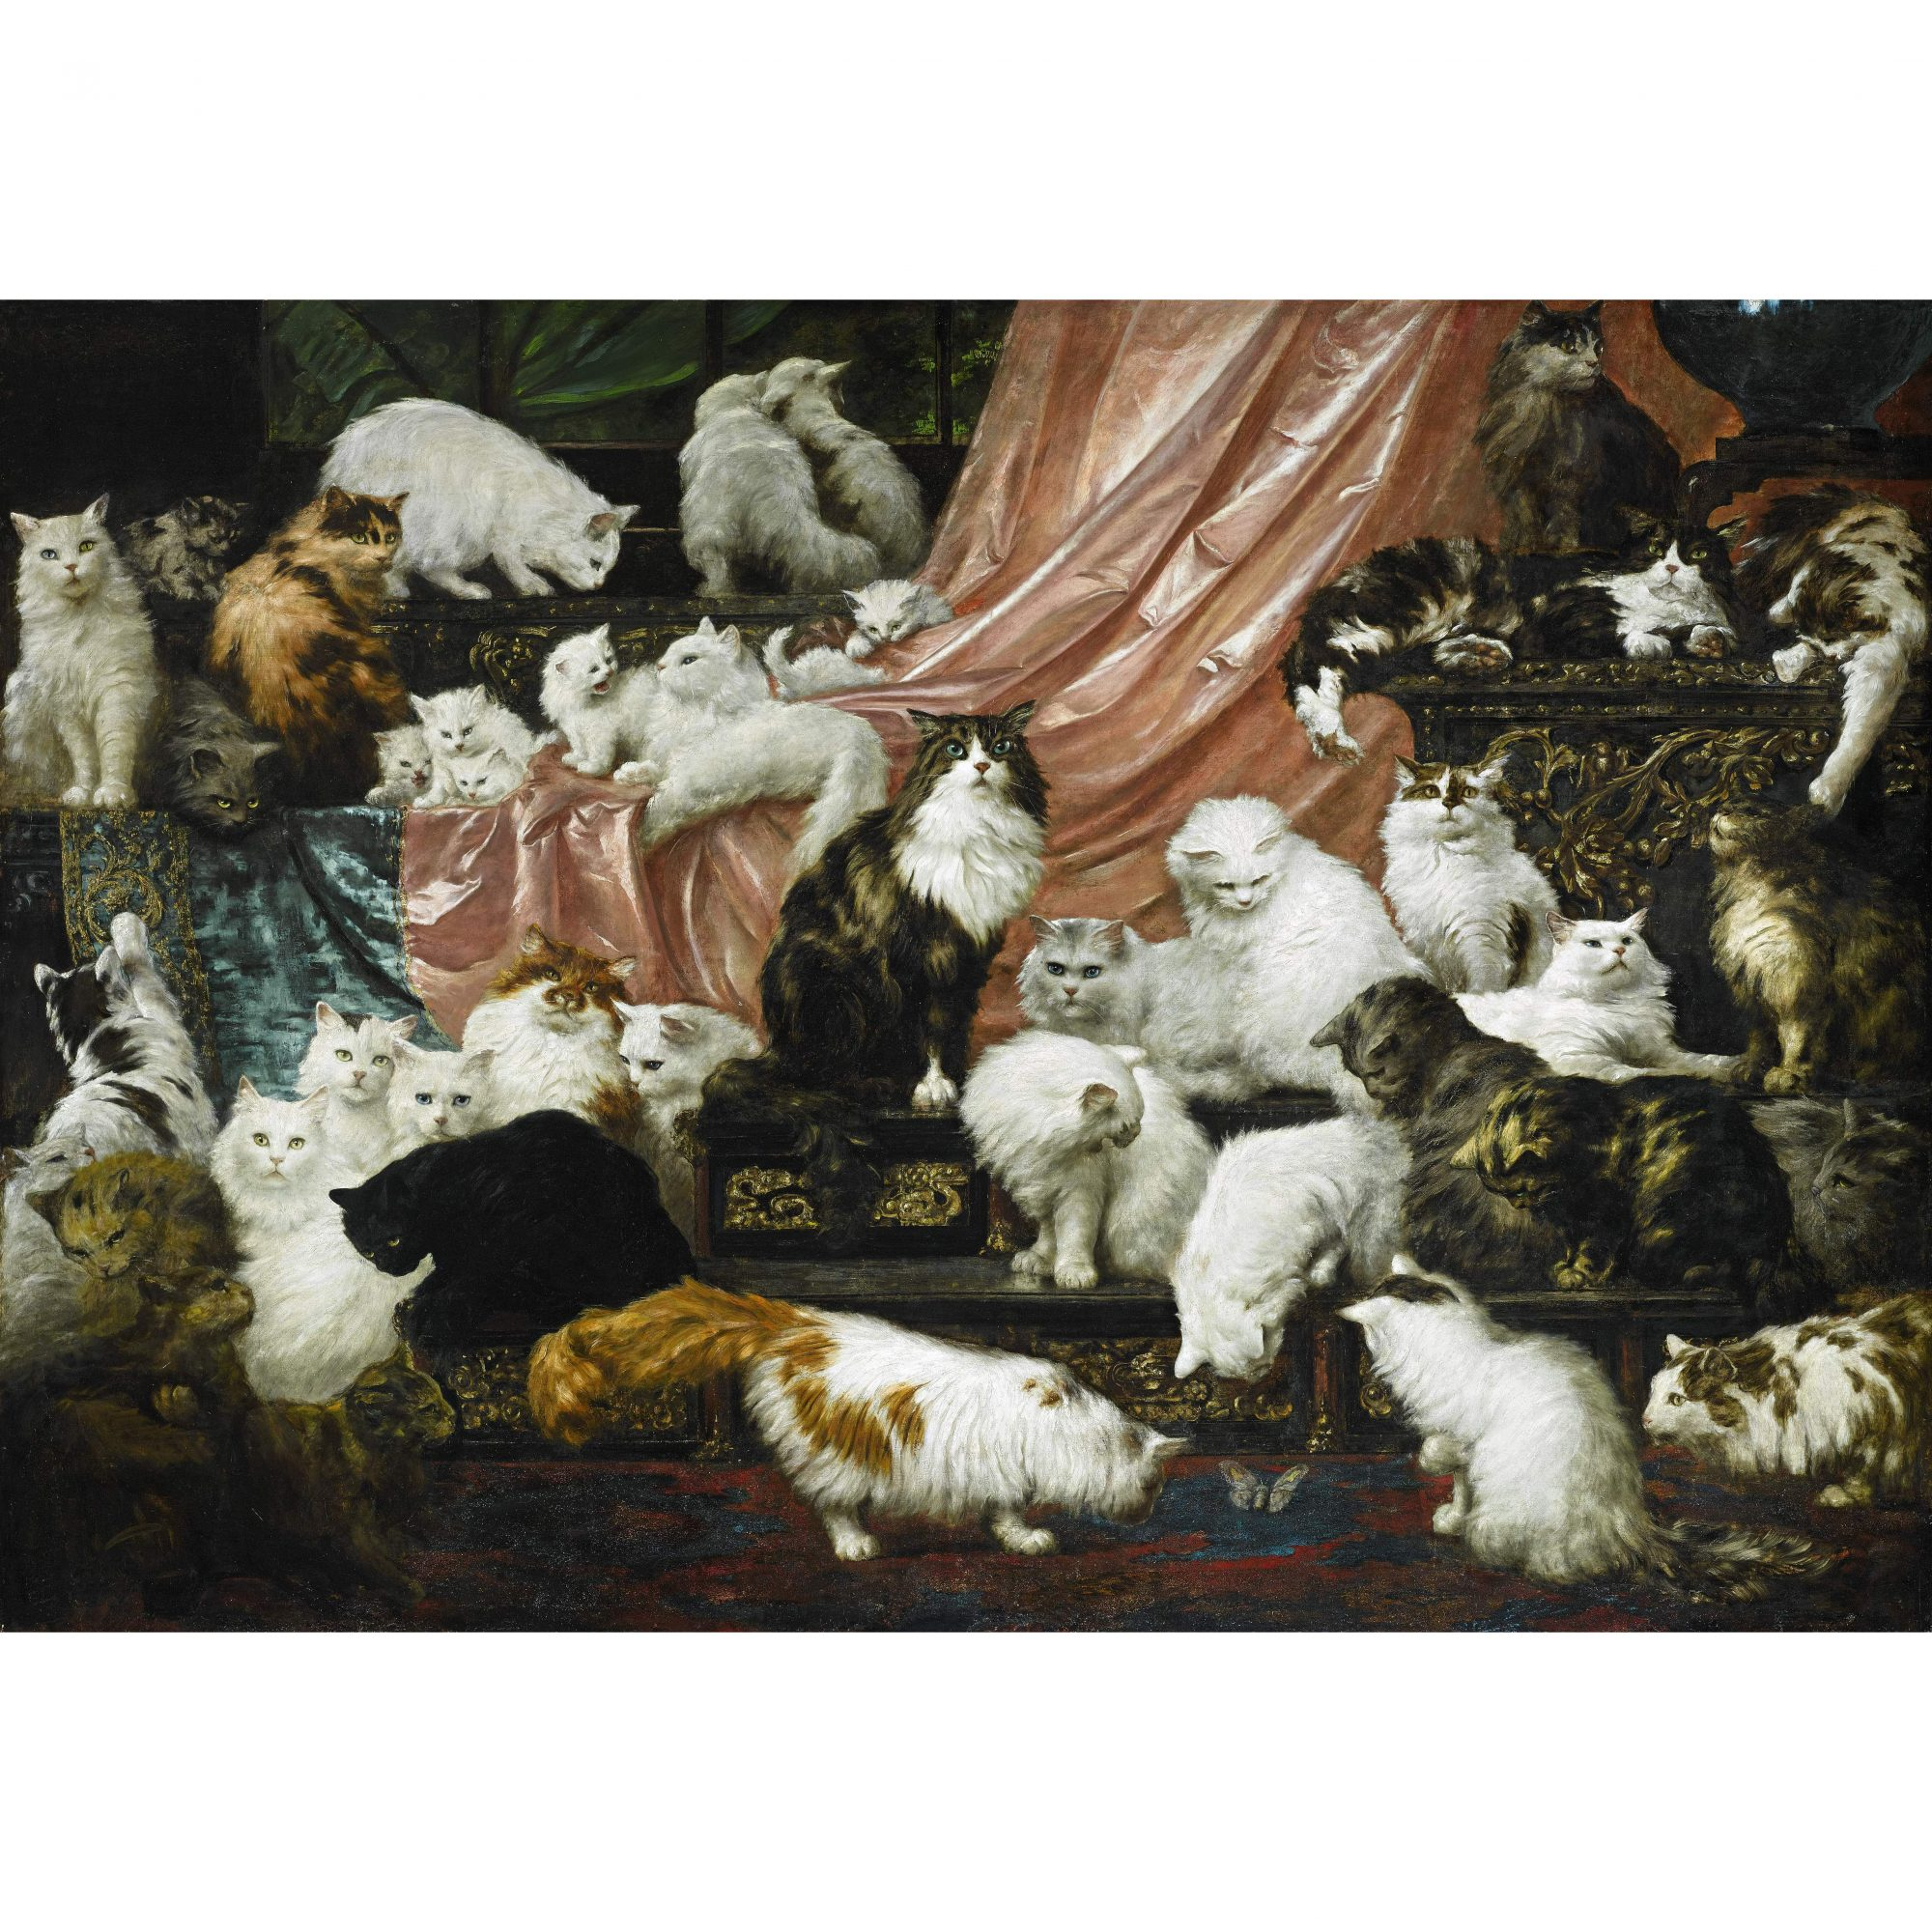 Don't Miss Your Chance to See the World's Greatest Cat Painting